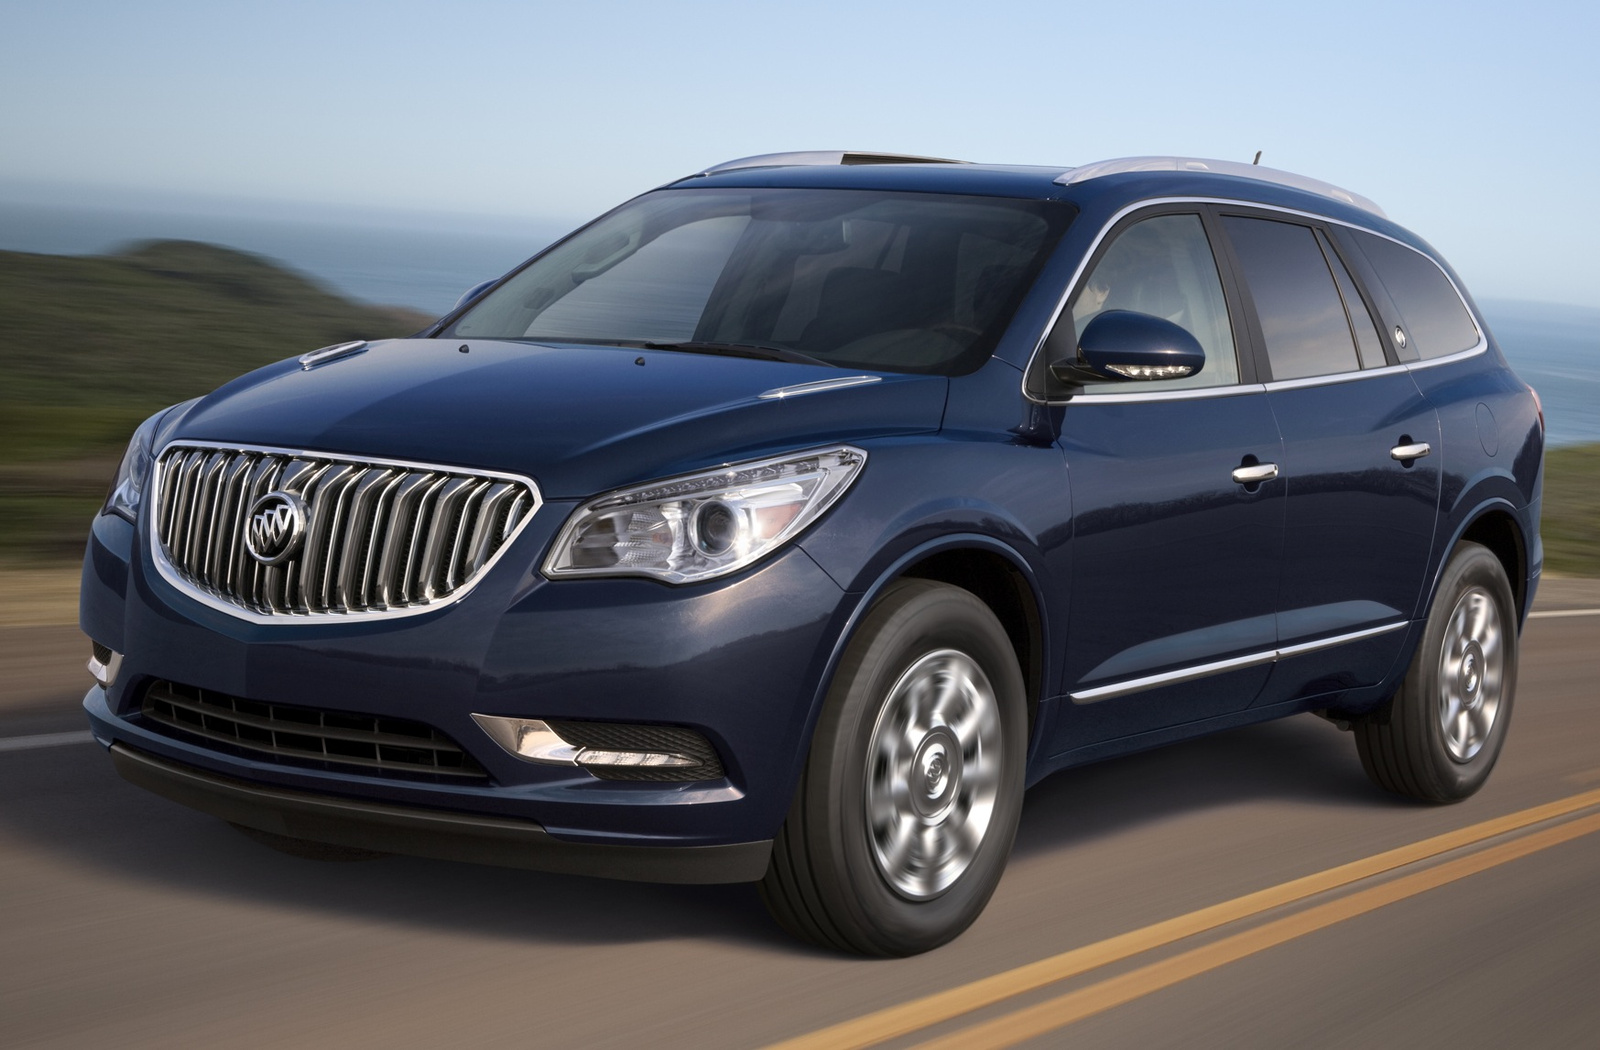 New 2014 / 2015 Buick Enclave For Sale - CarGurus